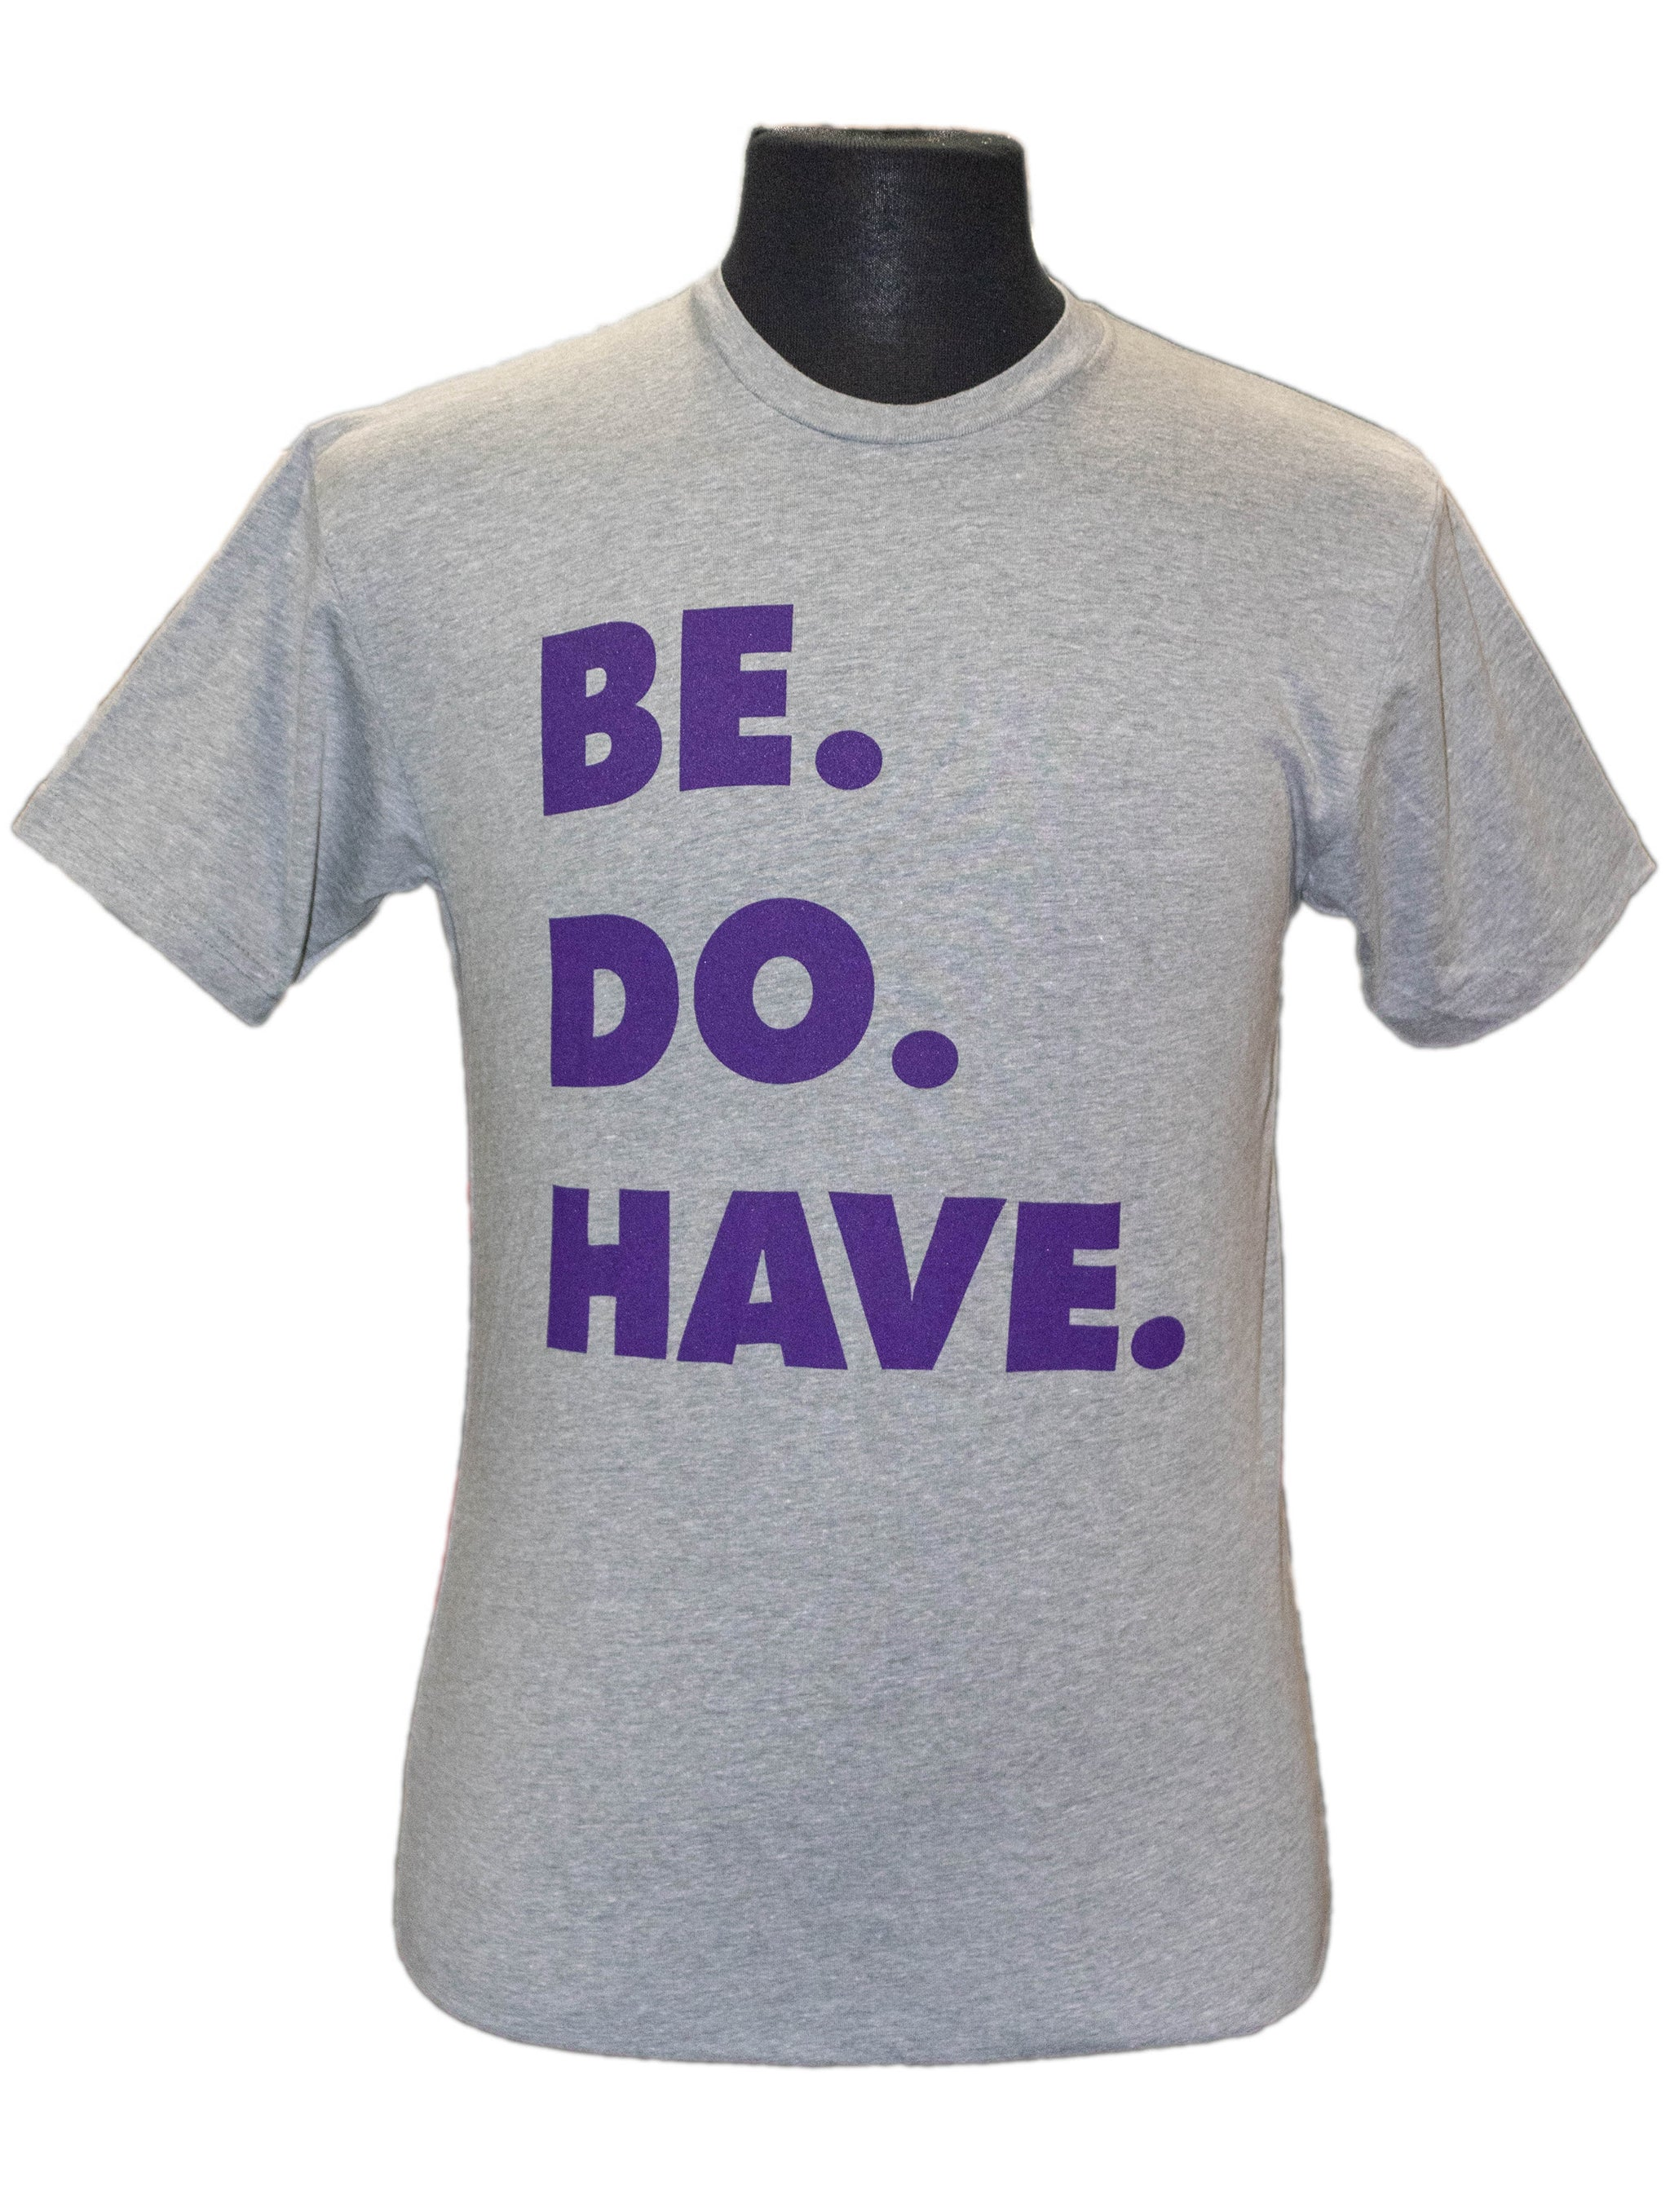 Grey crew neck shirt with Keller Williams saying in purple